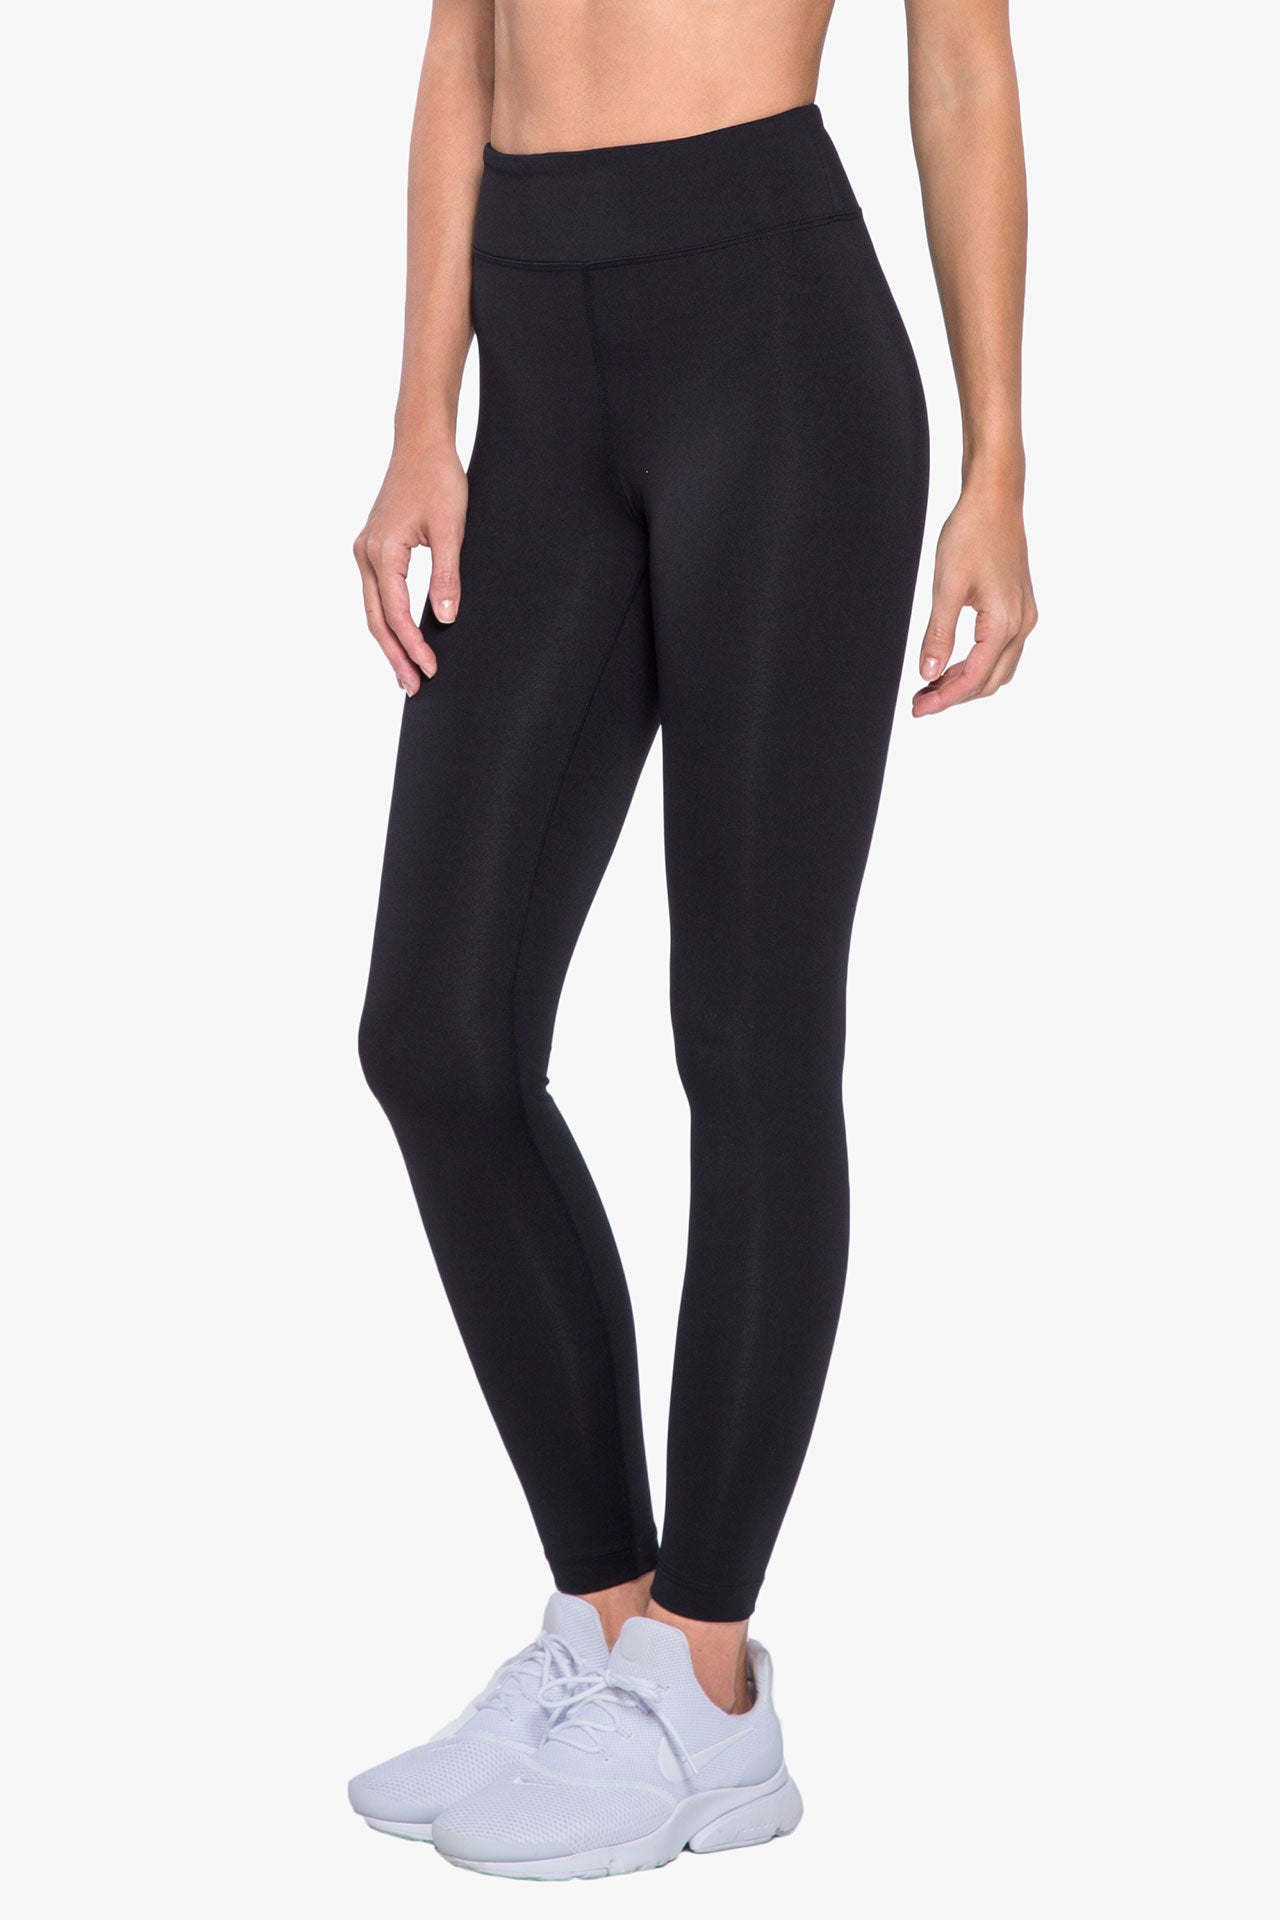 Primary High Rise Legging